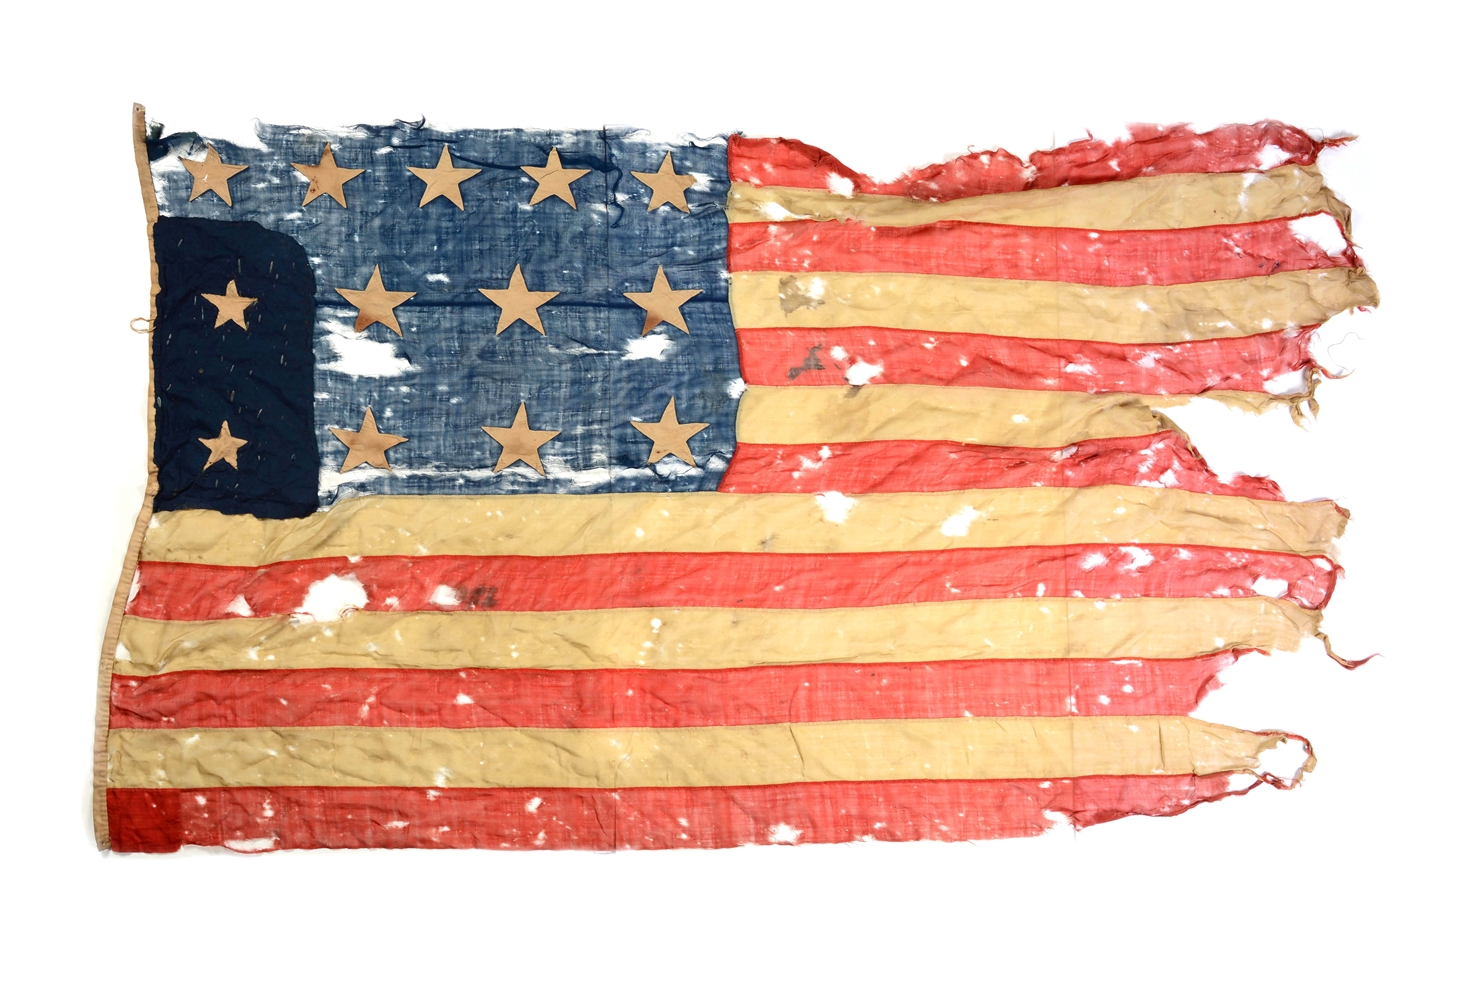 Large, 13-Star US Flag, 19th Century.